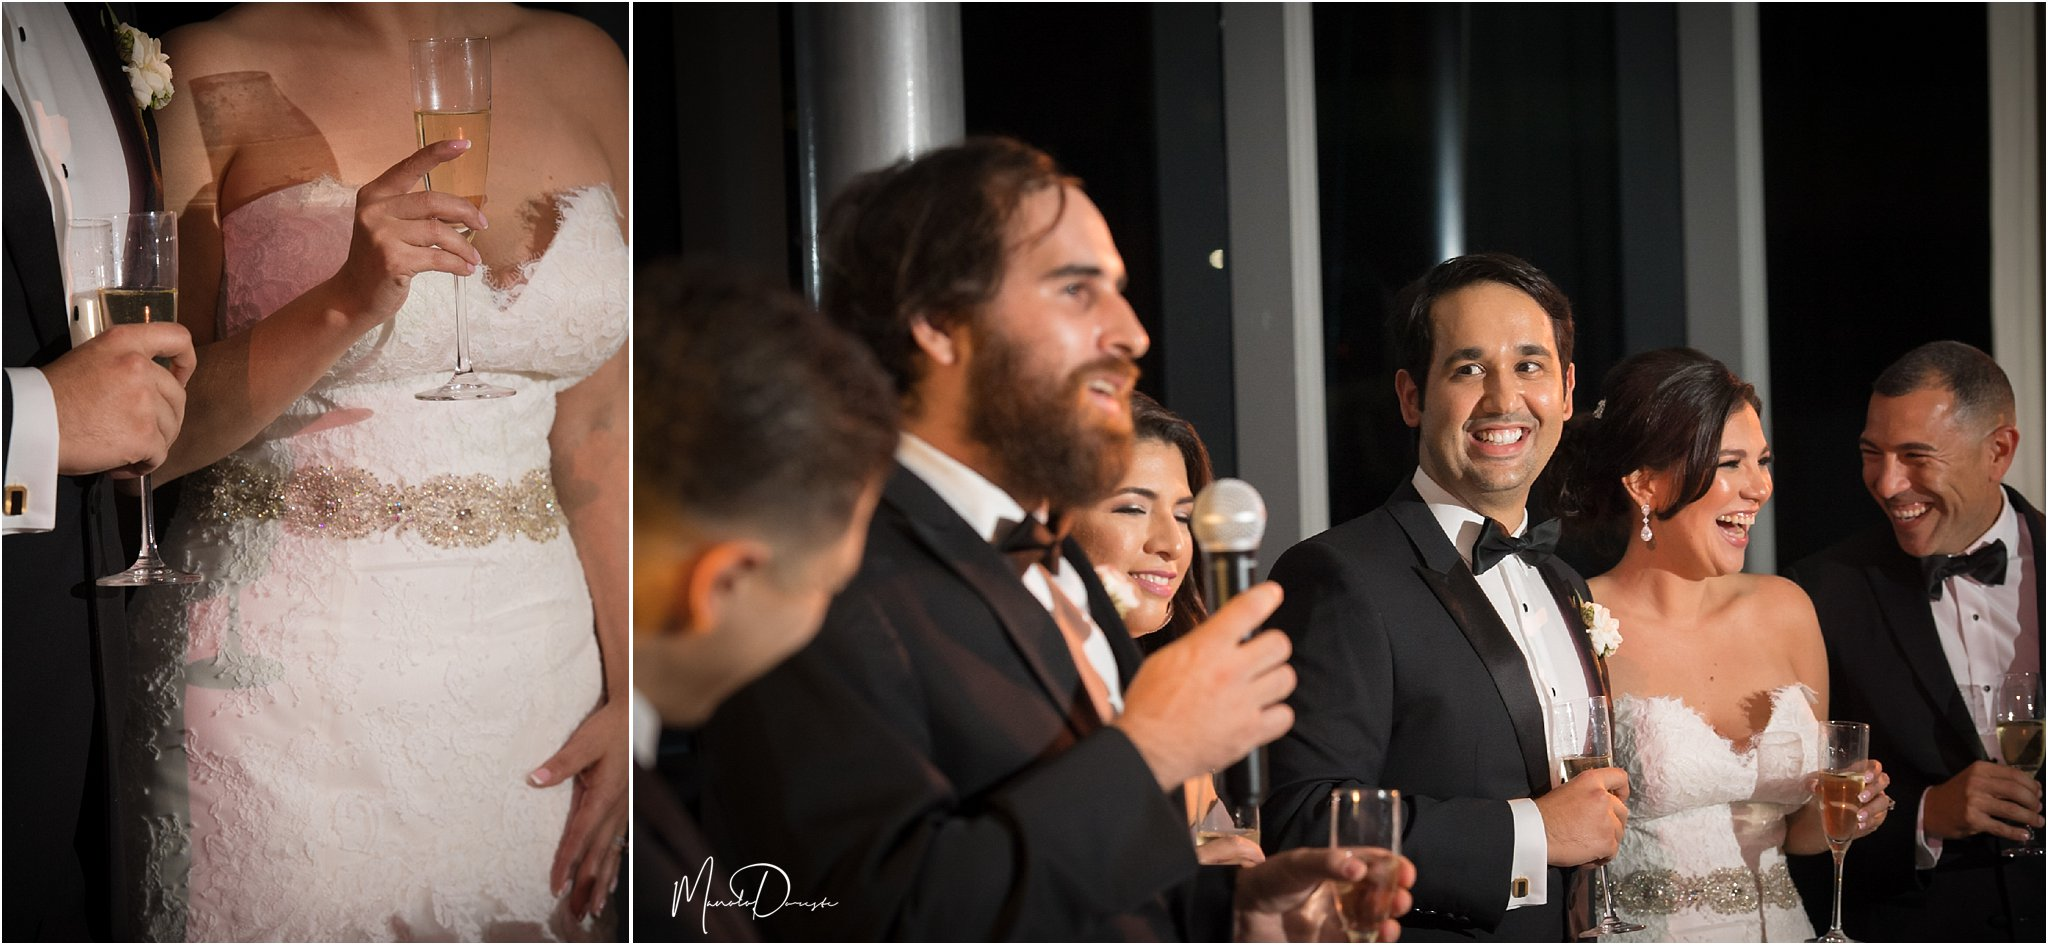 0098_ManoloDoreste_InFocusStudios_Wedding_Family_Photography_Miami_MiamiPhotographer.jpg